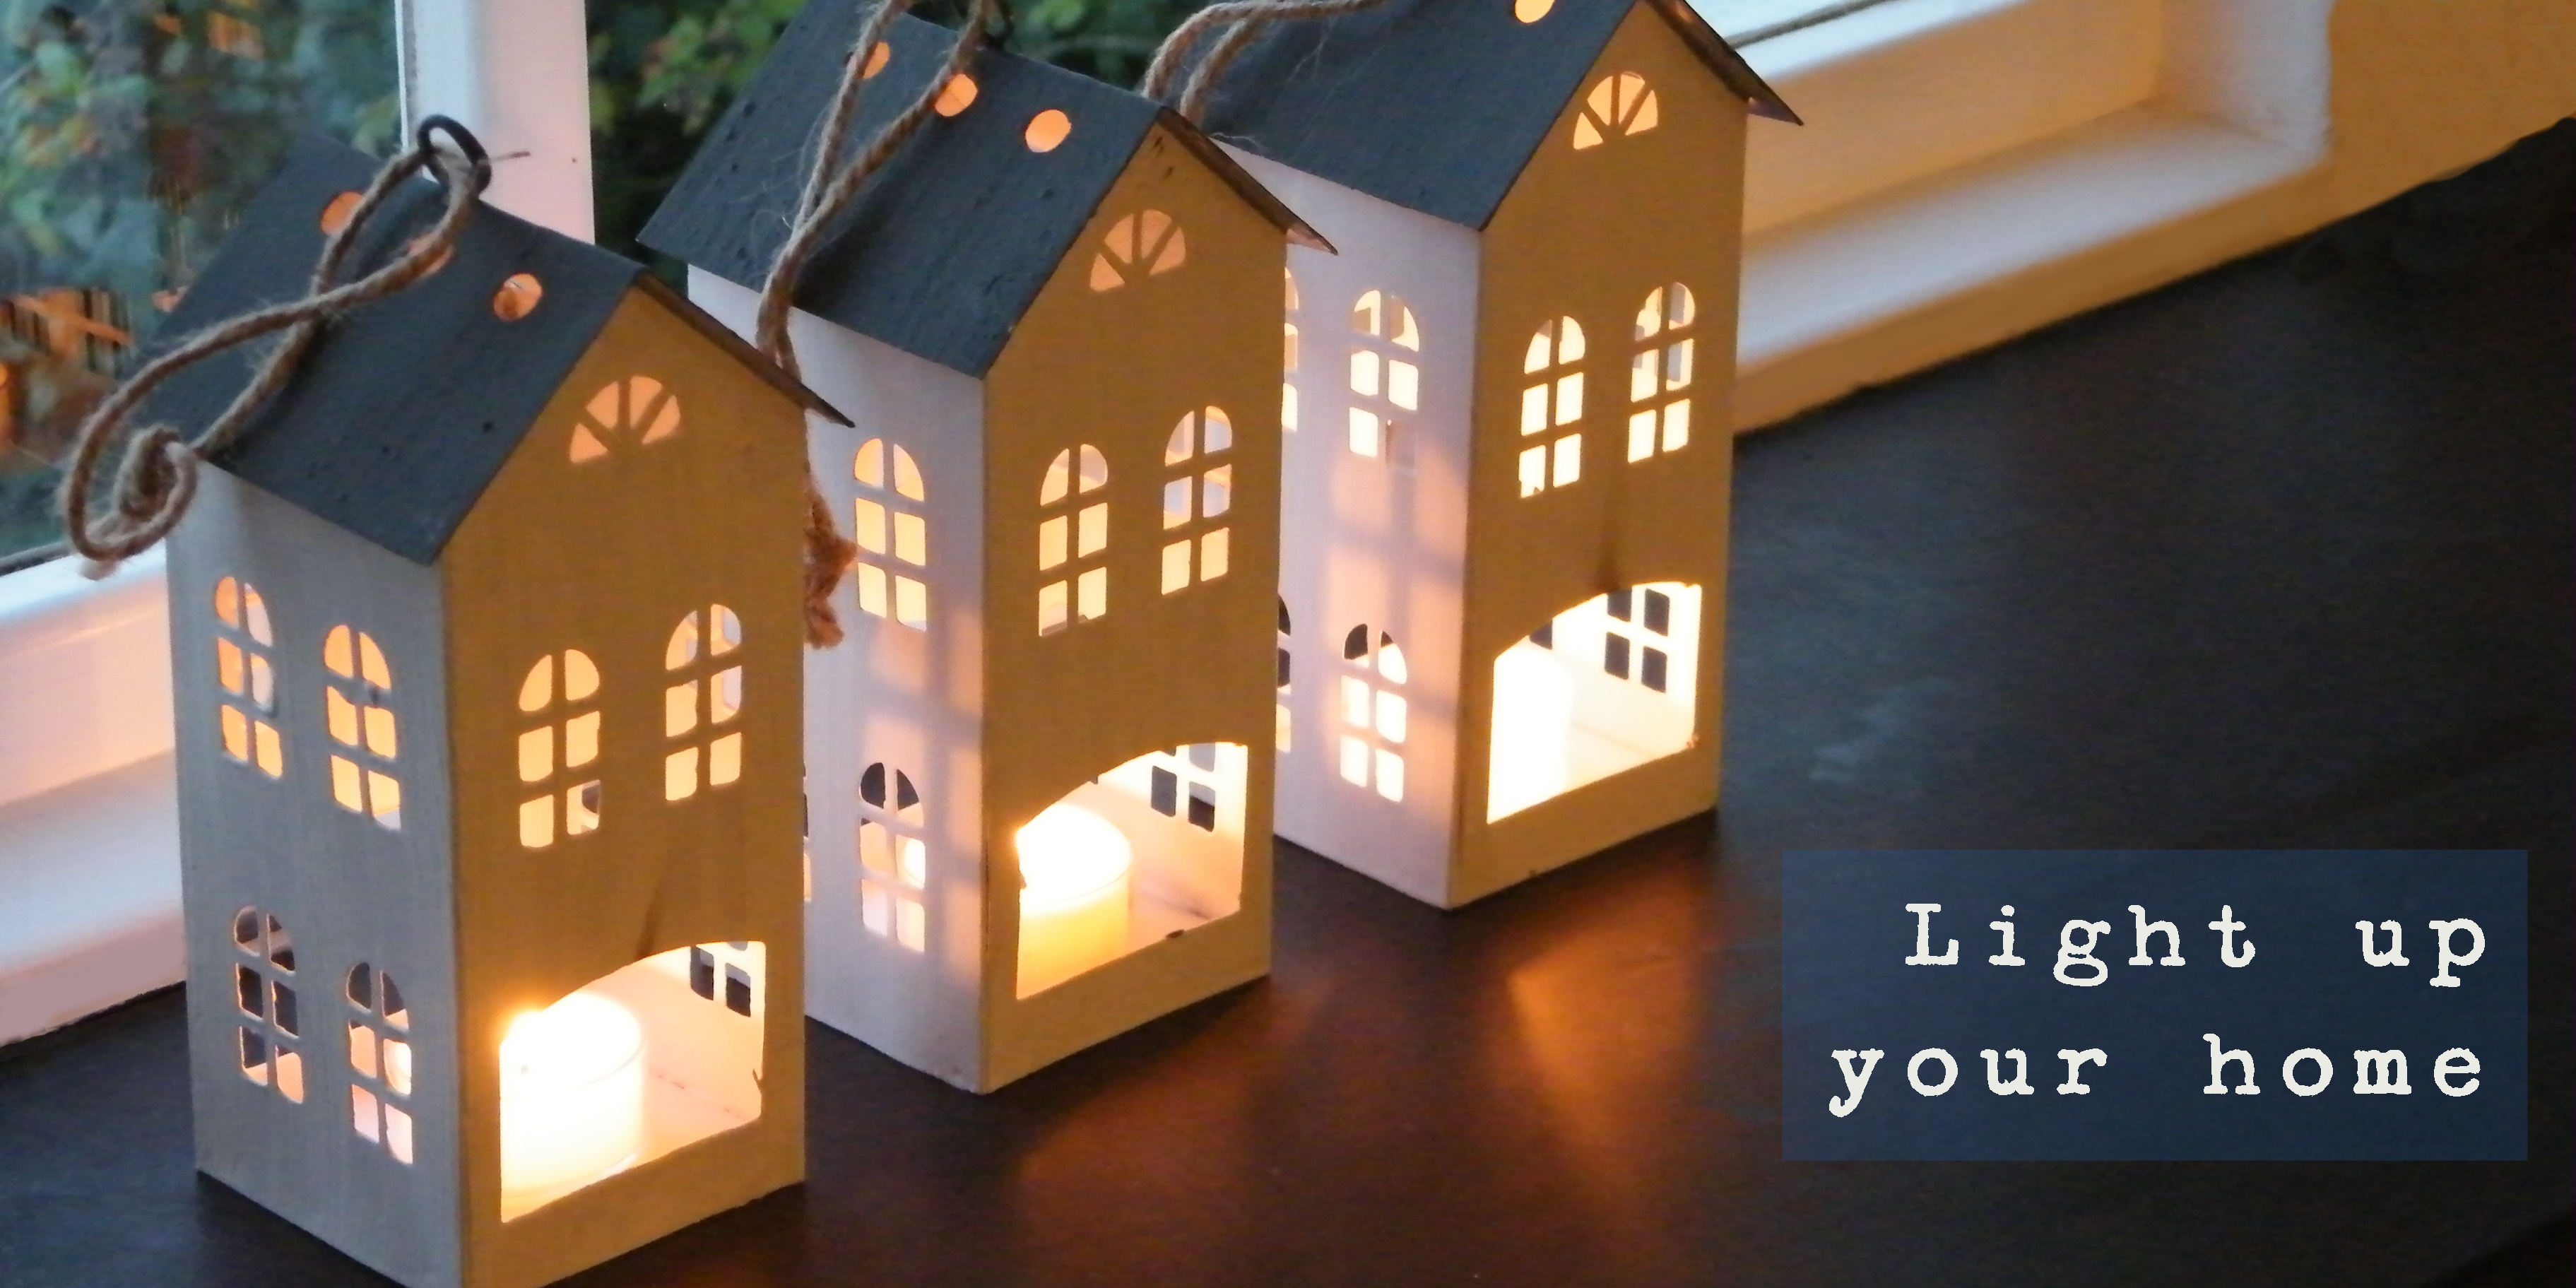 Light up your home - house lanterns